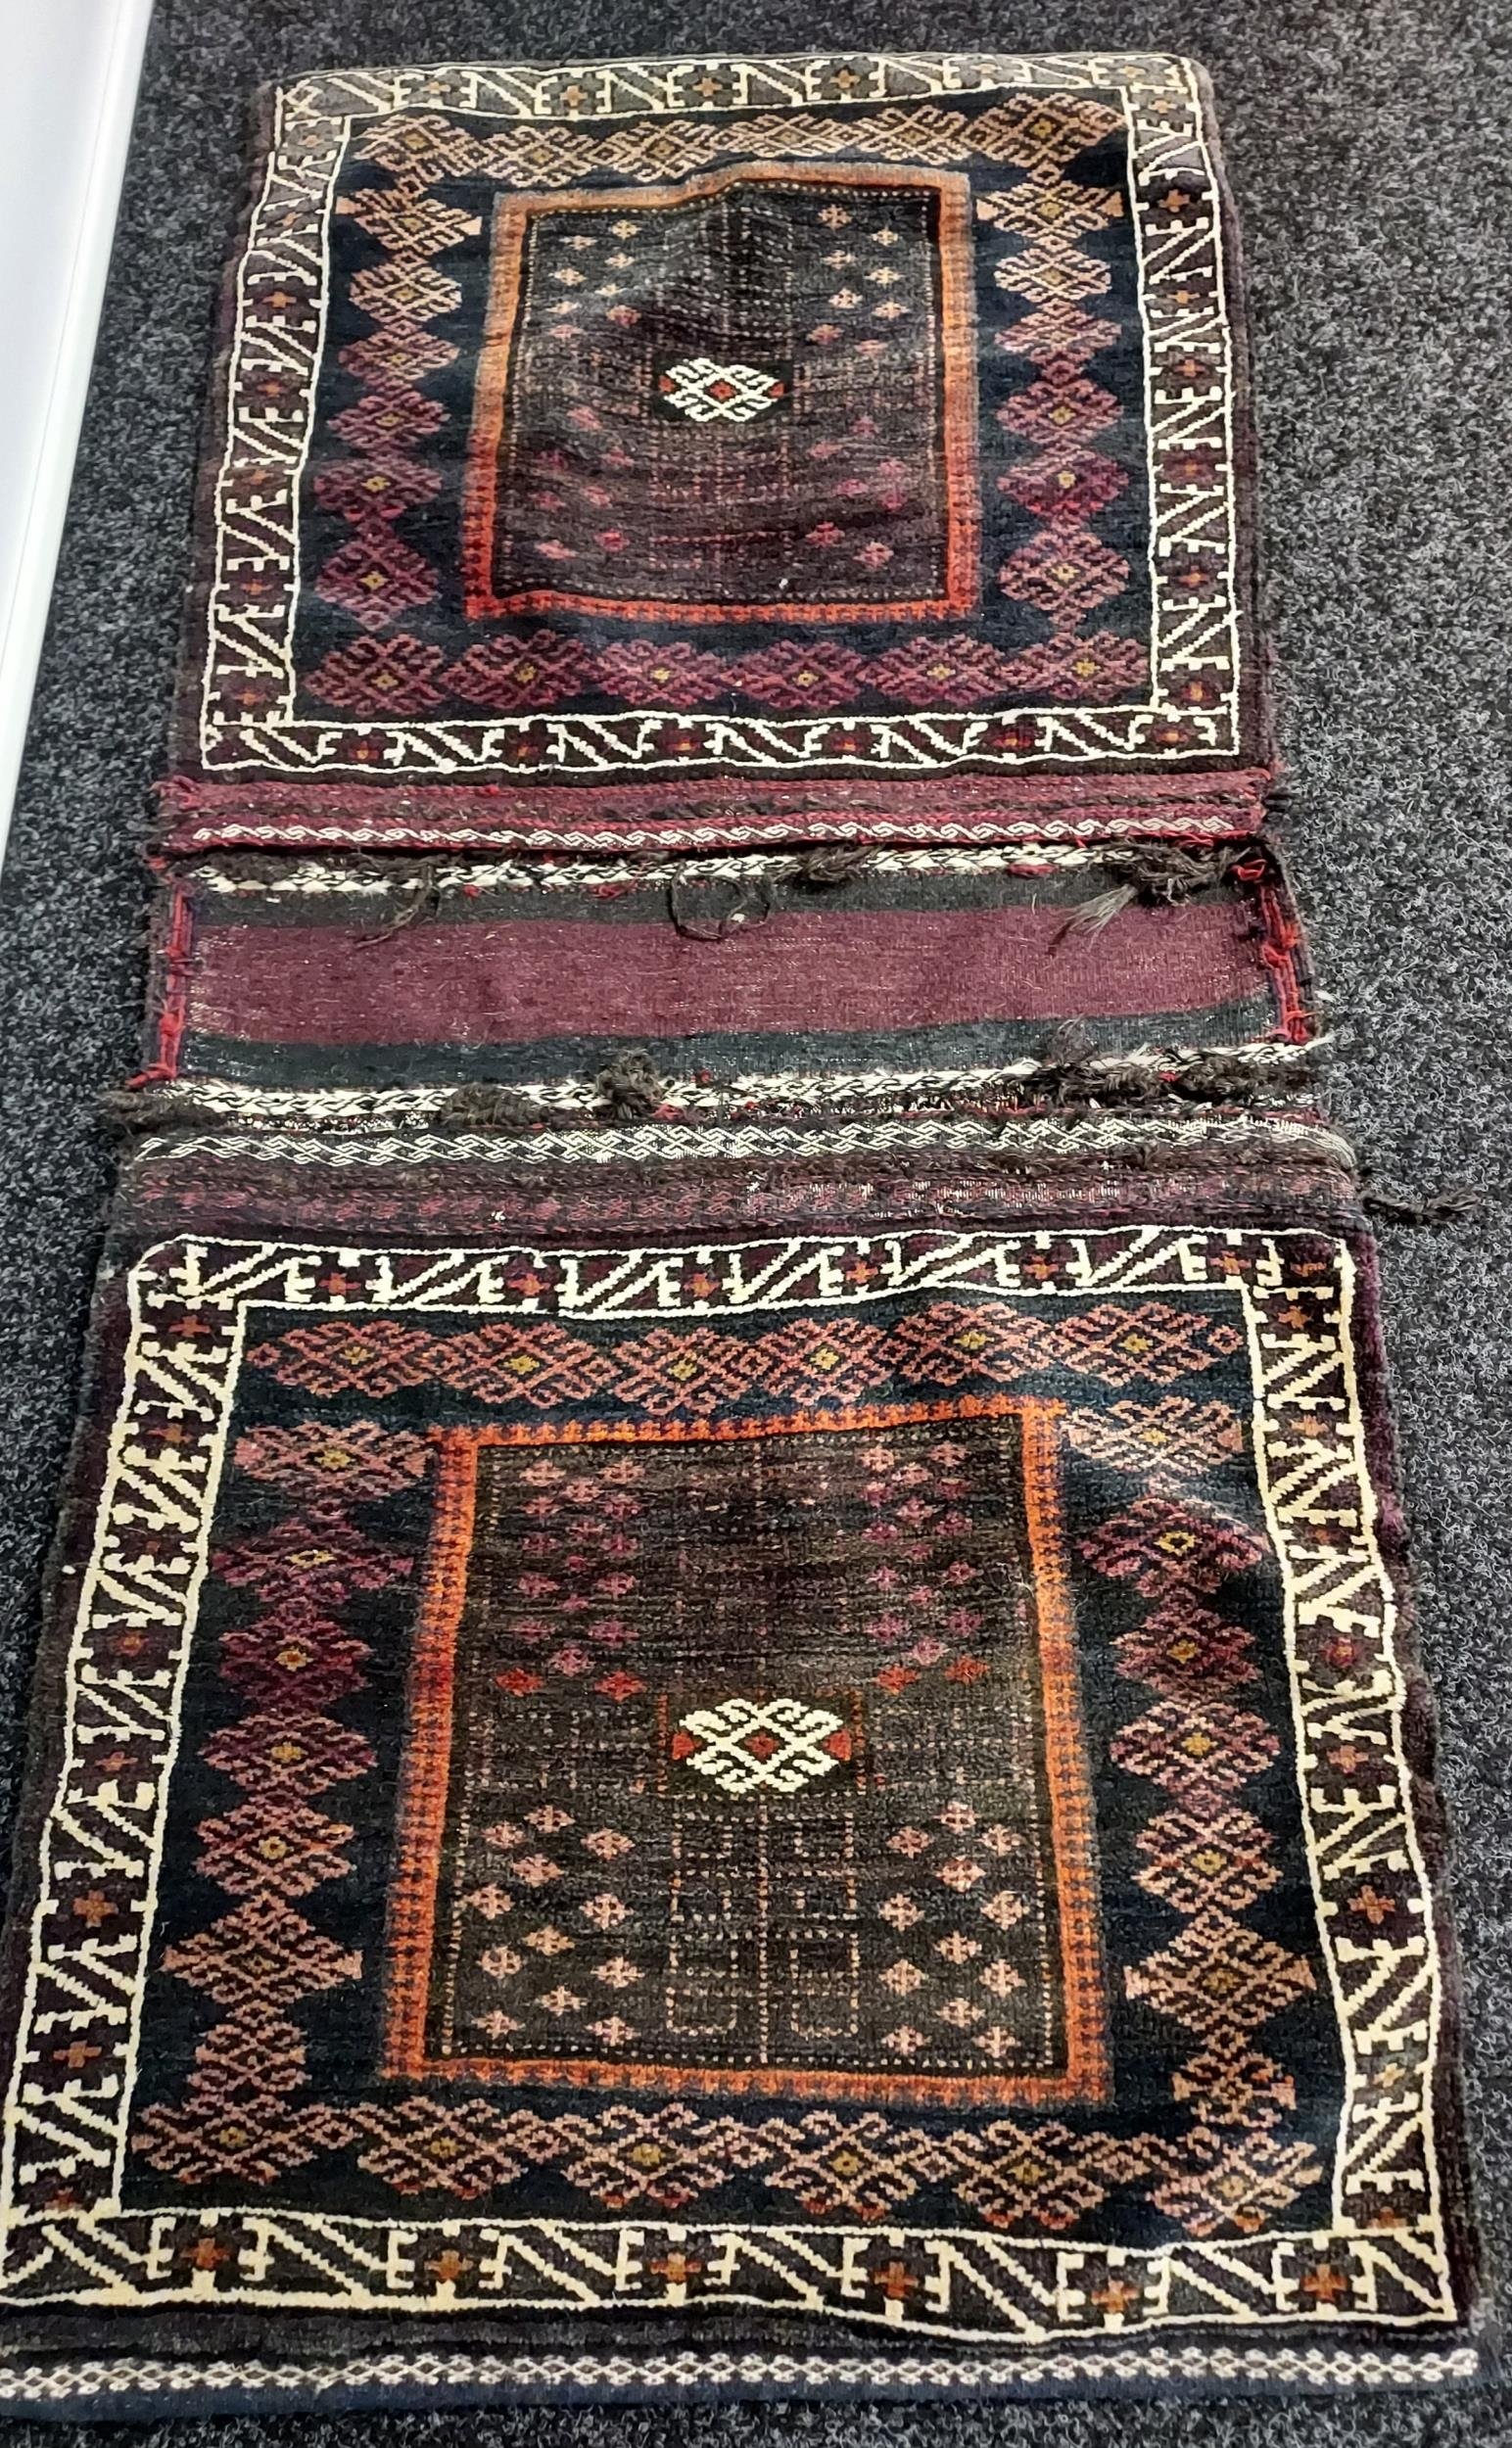 Antique Persian hand woven camel saddle bag. - Image 2 of 3